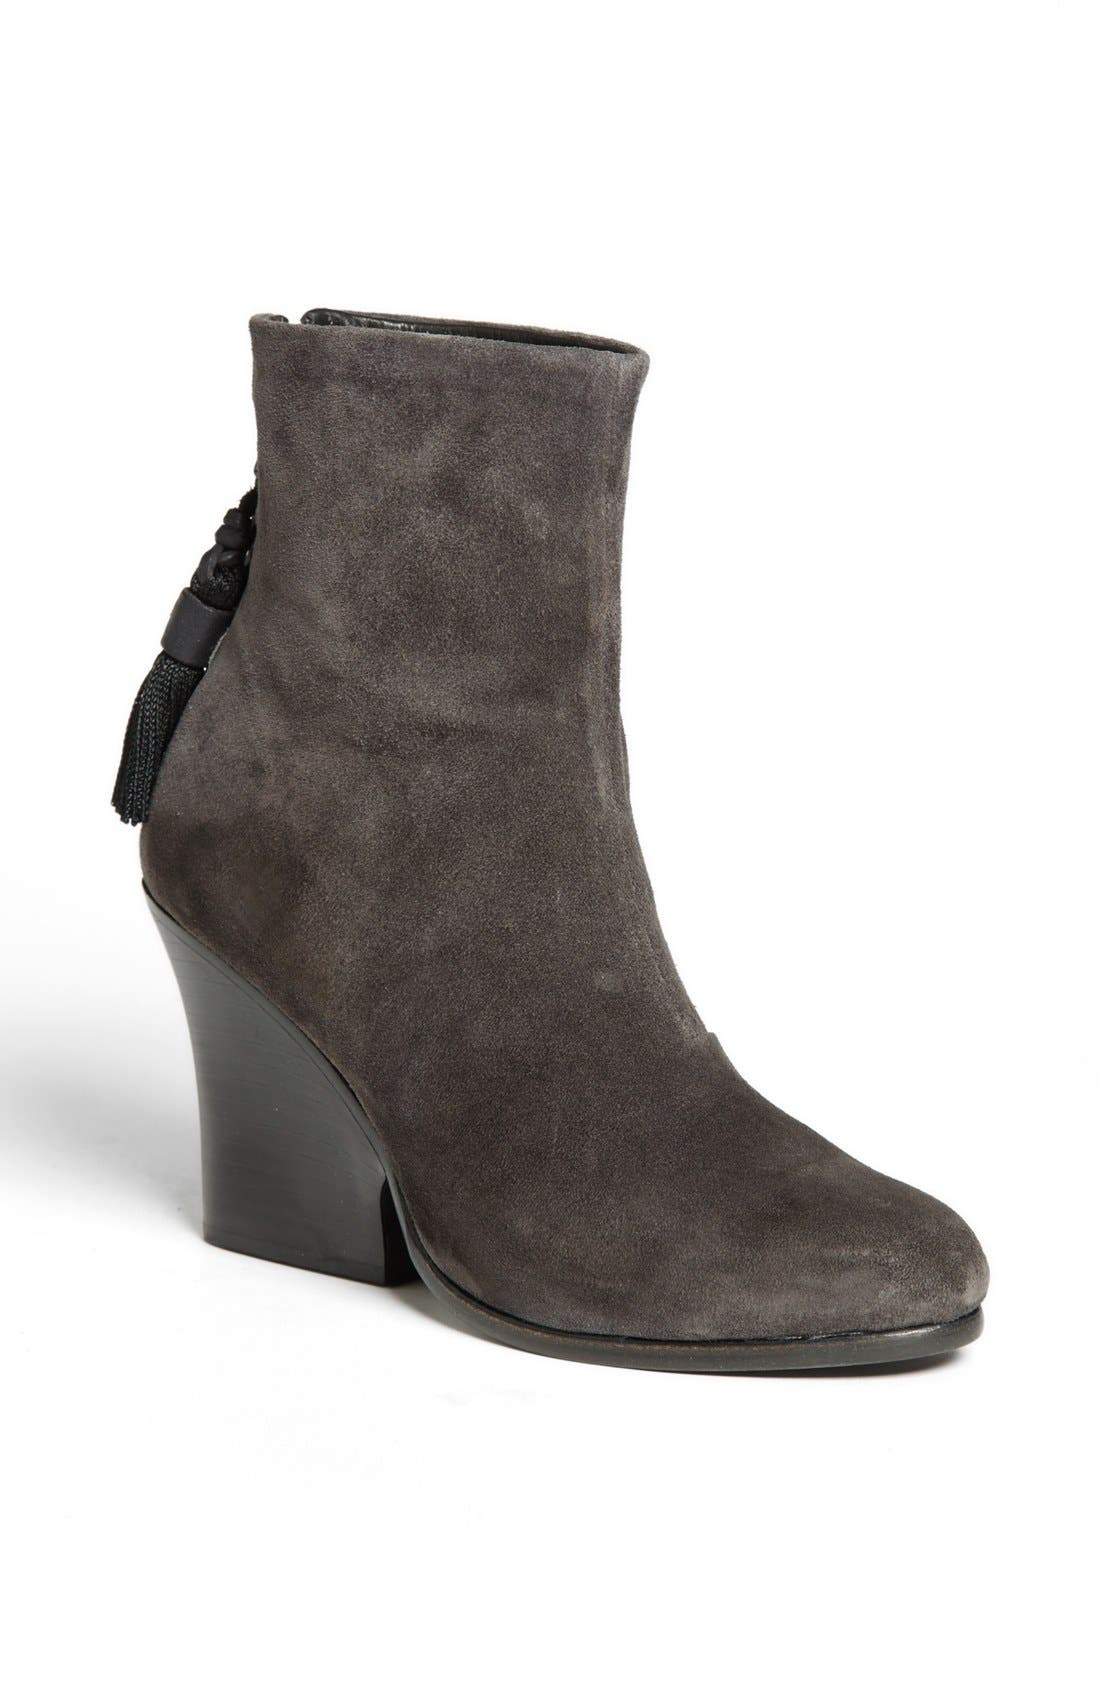 Alternate Image 1 Selected - rag & bone 'Tacita' Boot